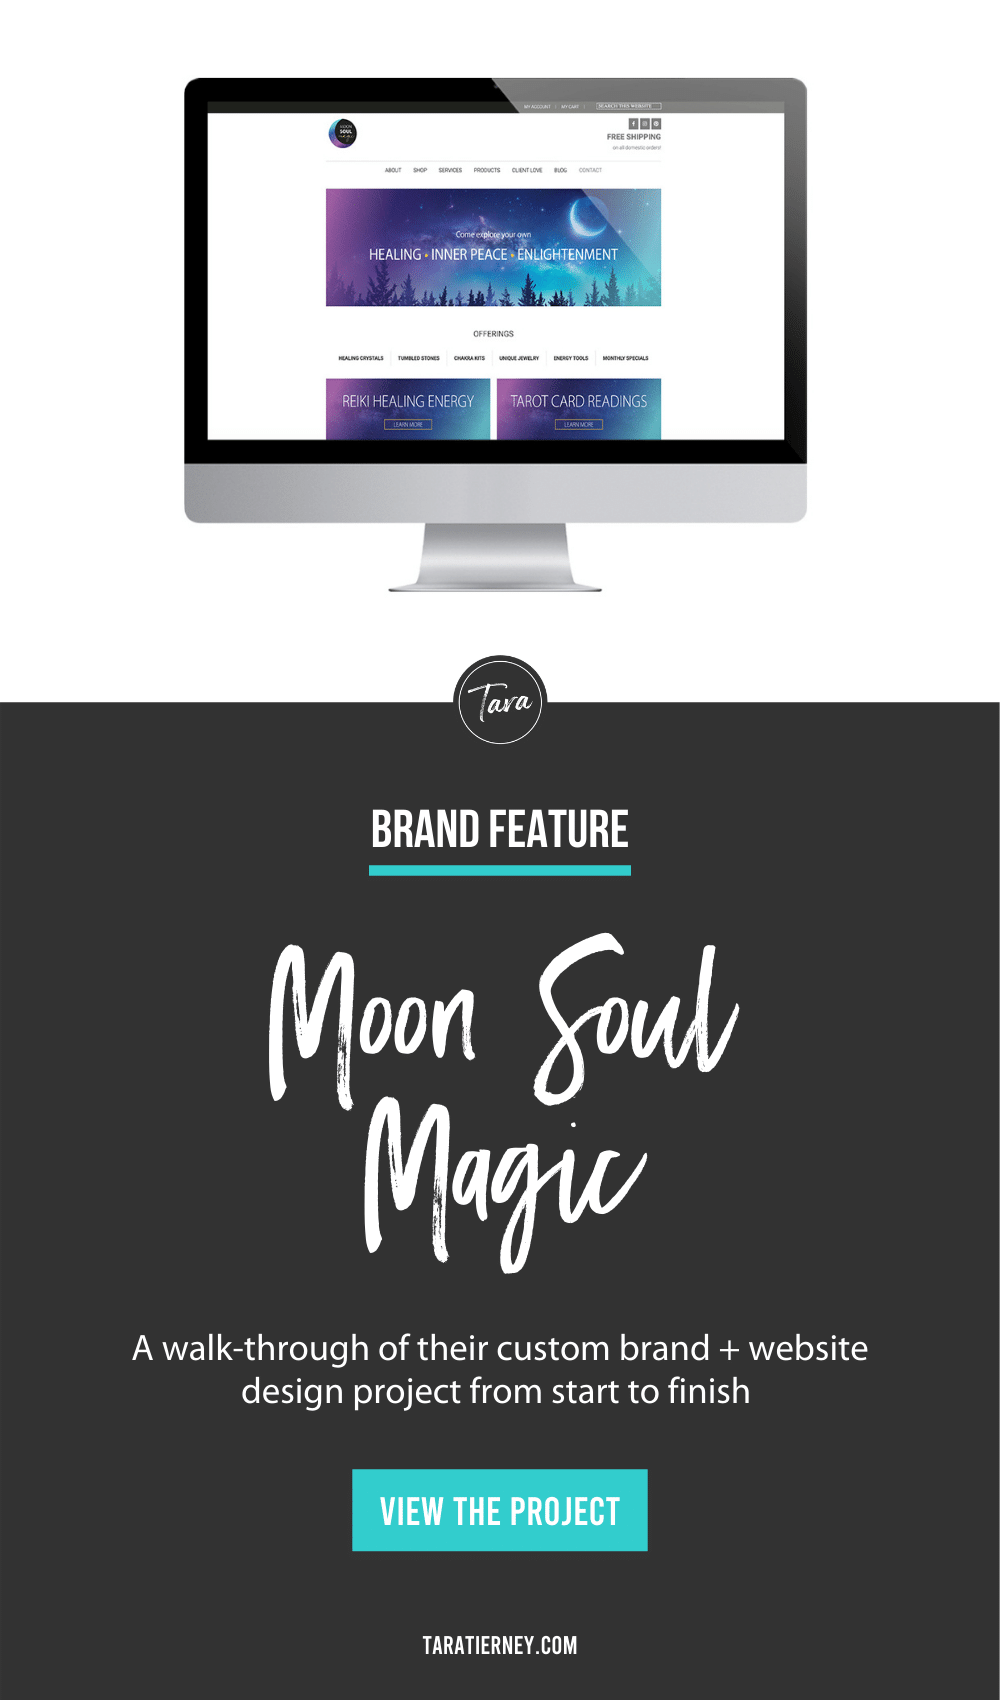 Moon Soul Magic Brand + Website Design Project